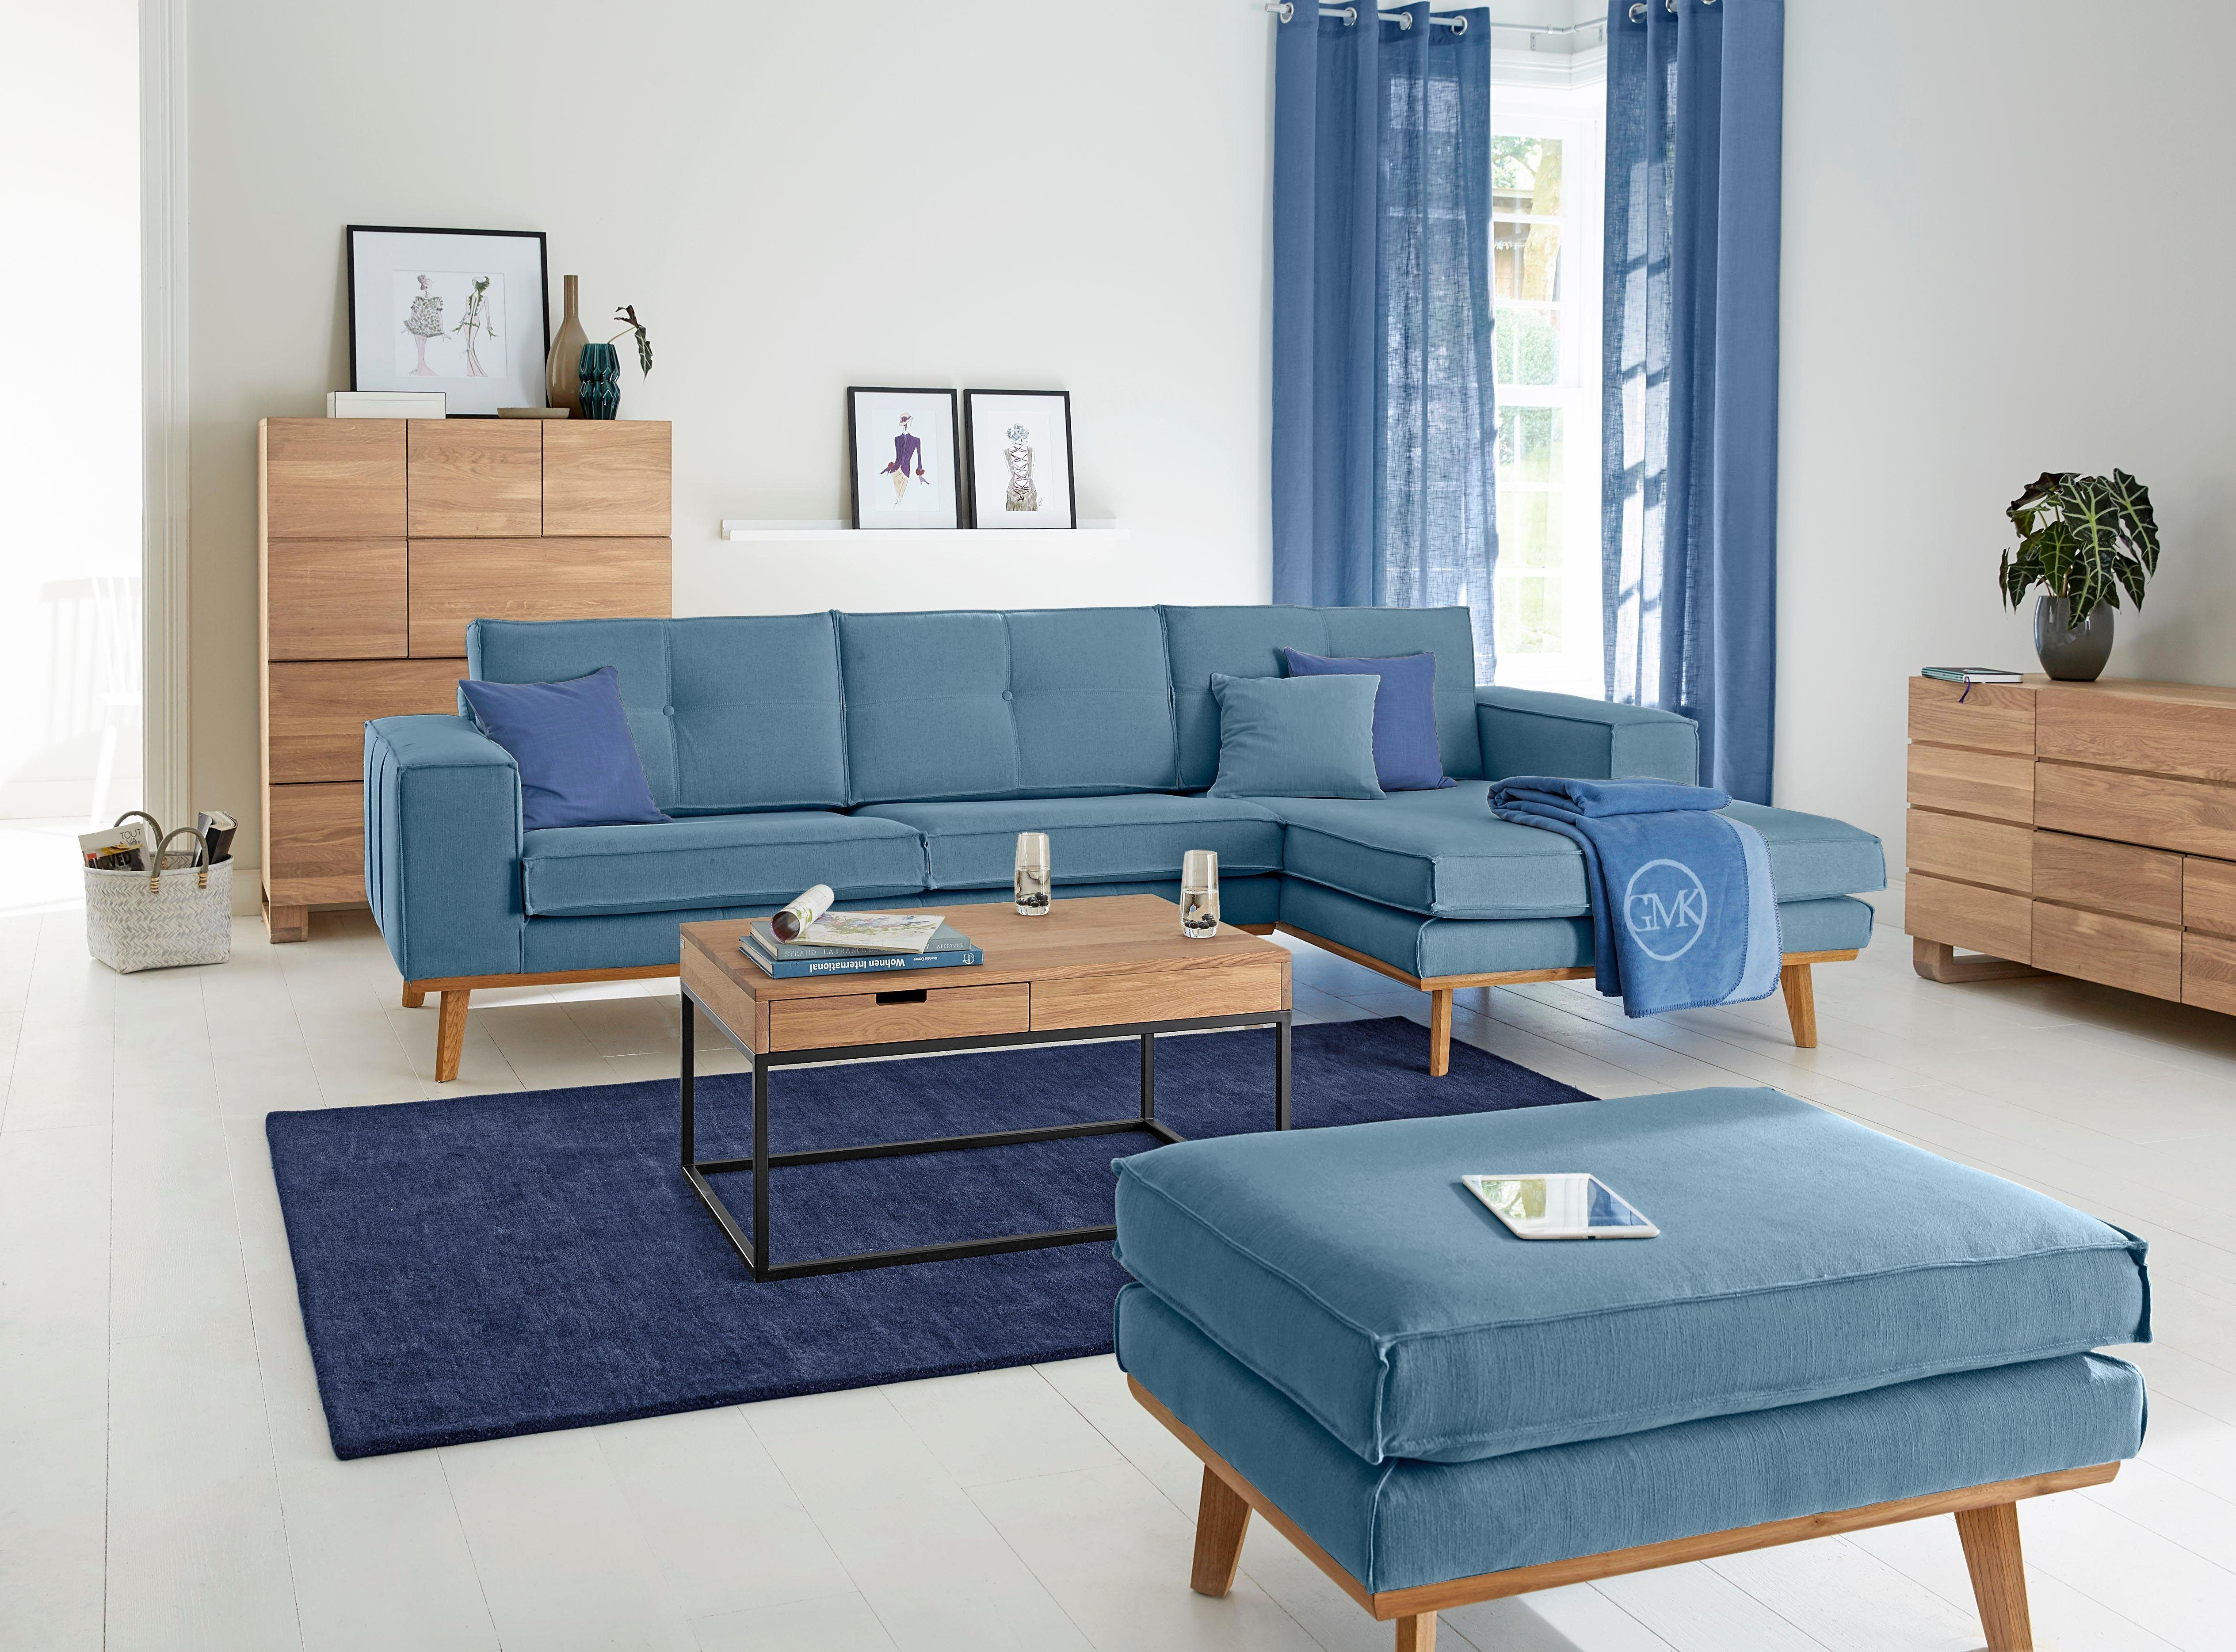 Sofa Dreams Stoff Couch MONZA L Form mit LED Beleuchtung Jetzt